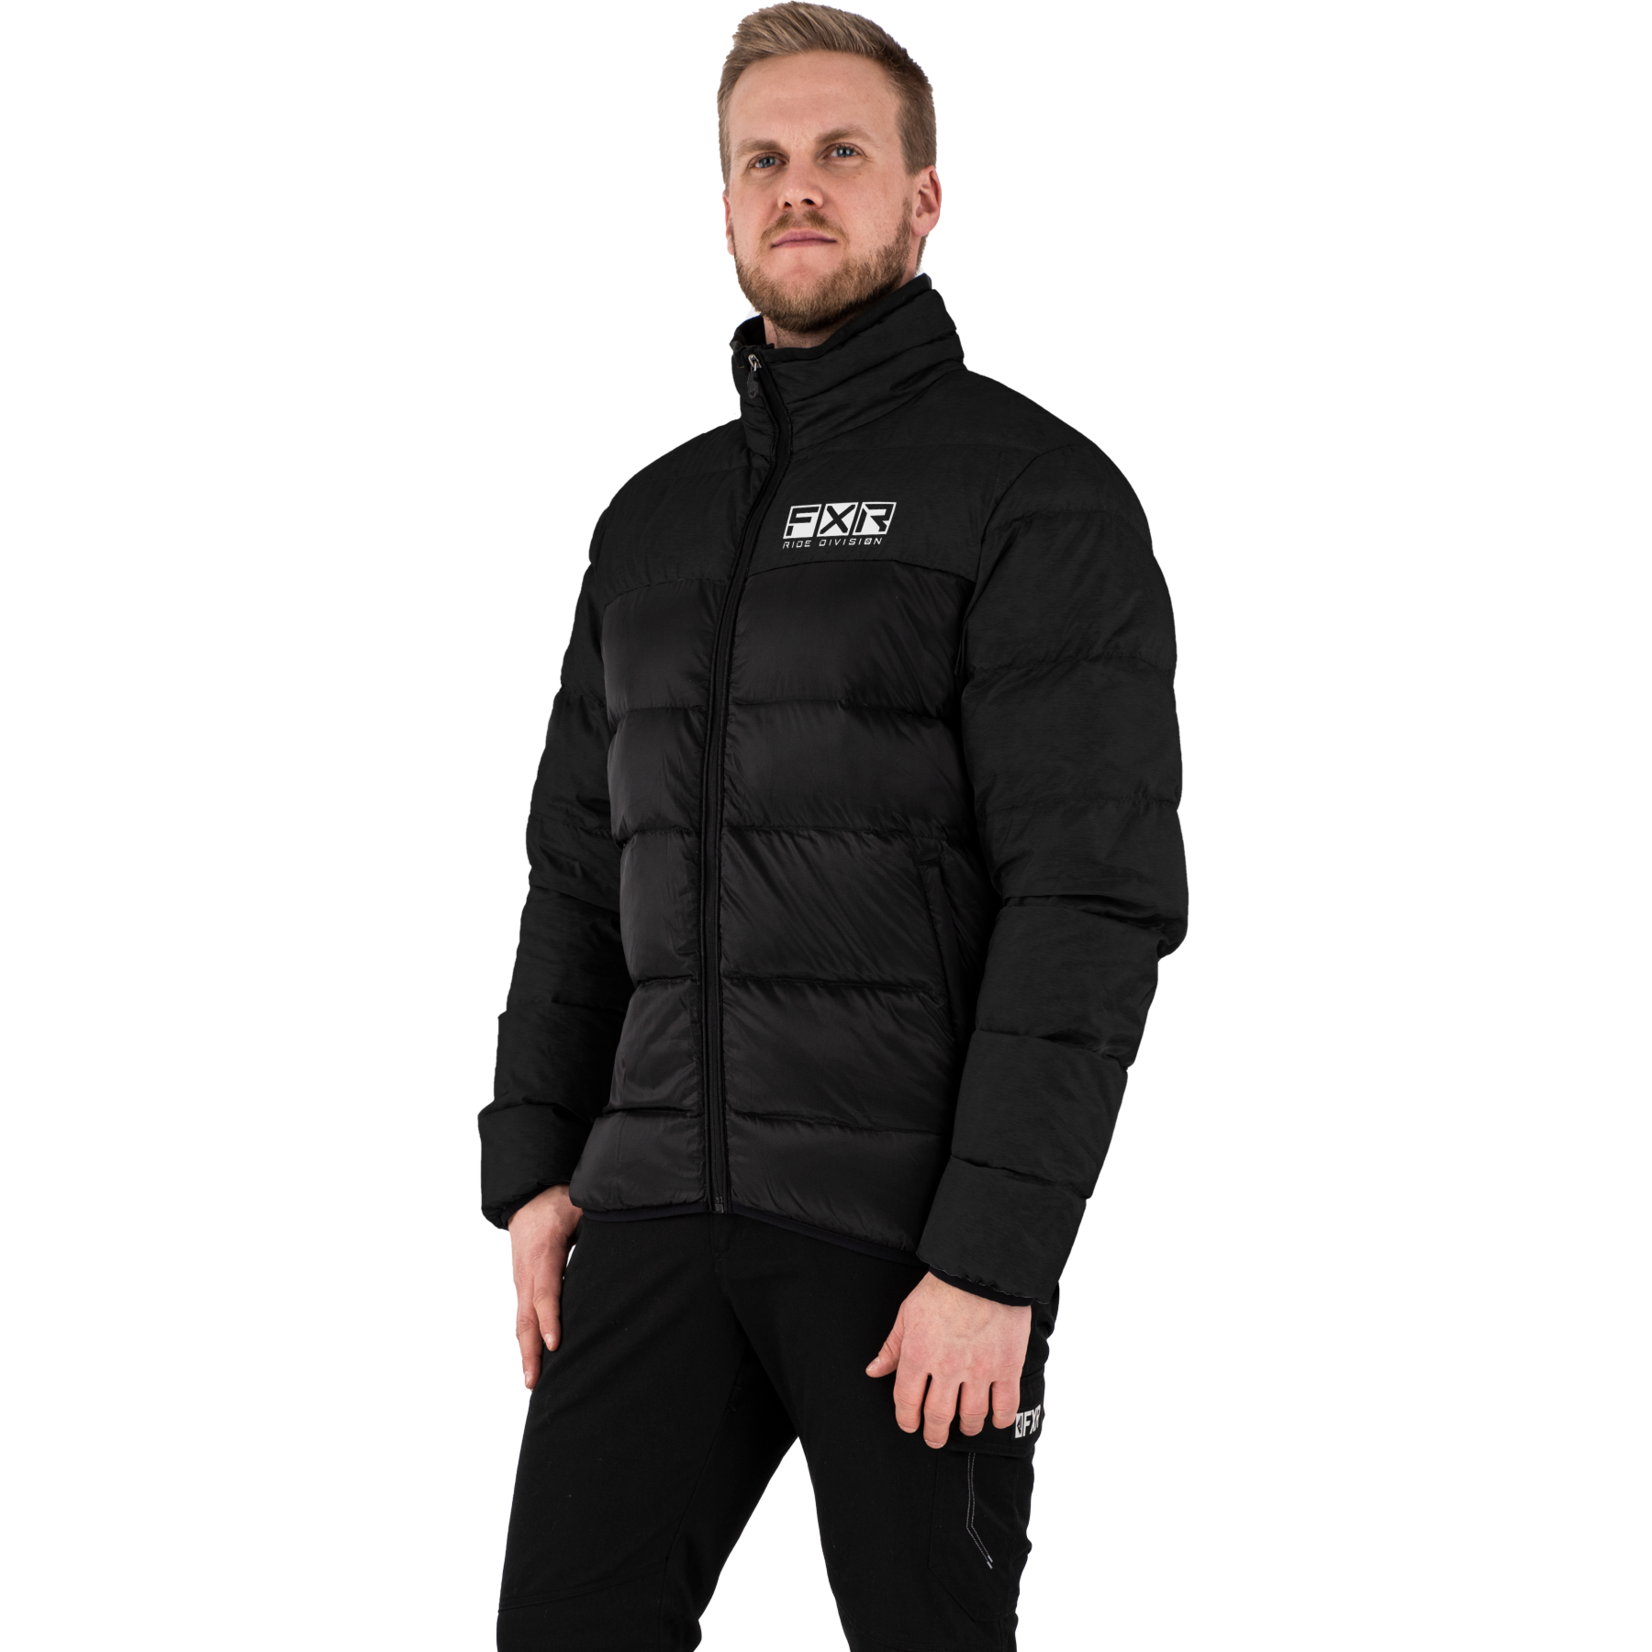 FXR FXR Men's Thermic Lite Synthetic Down Jacket